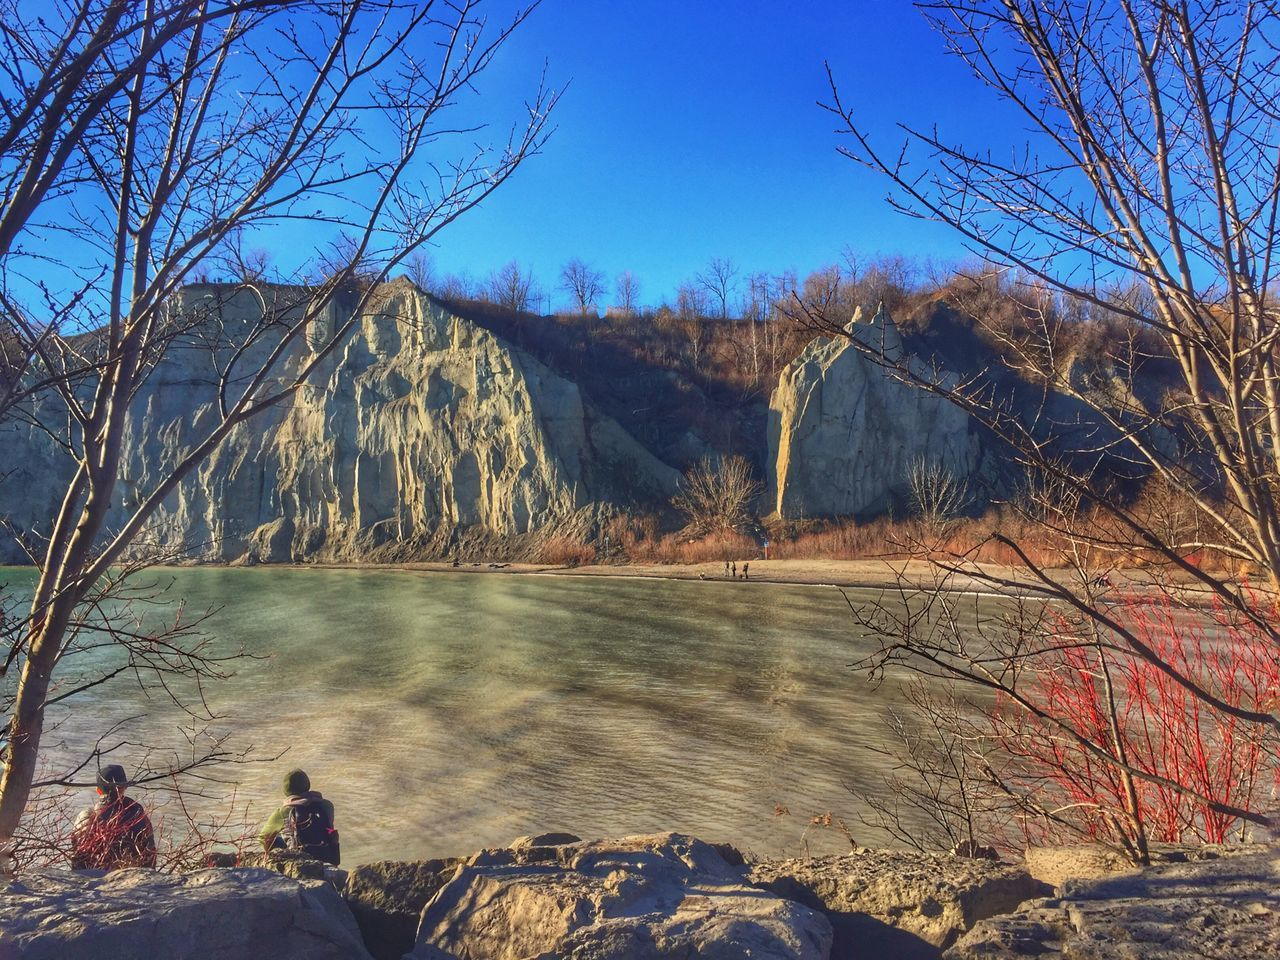 The warm days of winter. Nature Water Beauty In Nature Tree Scenics Rock - Object Tranquility Non-urban Scene Tranquil Scene Day Lake Landscape Outdoors Mountain Clear Sky No People Sky Reservoir Cliffside Toronto Scarborough Bluffs Lake Ontario